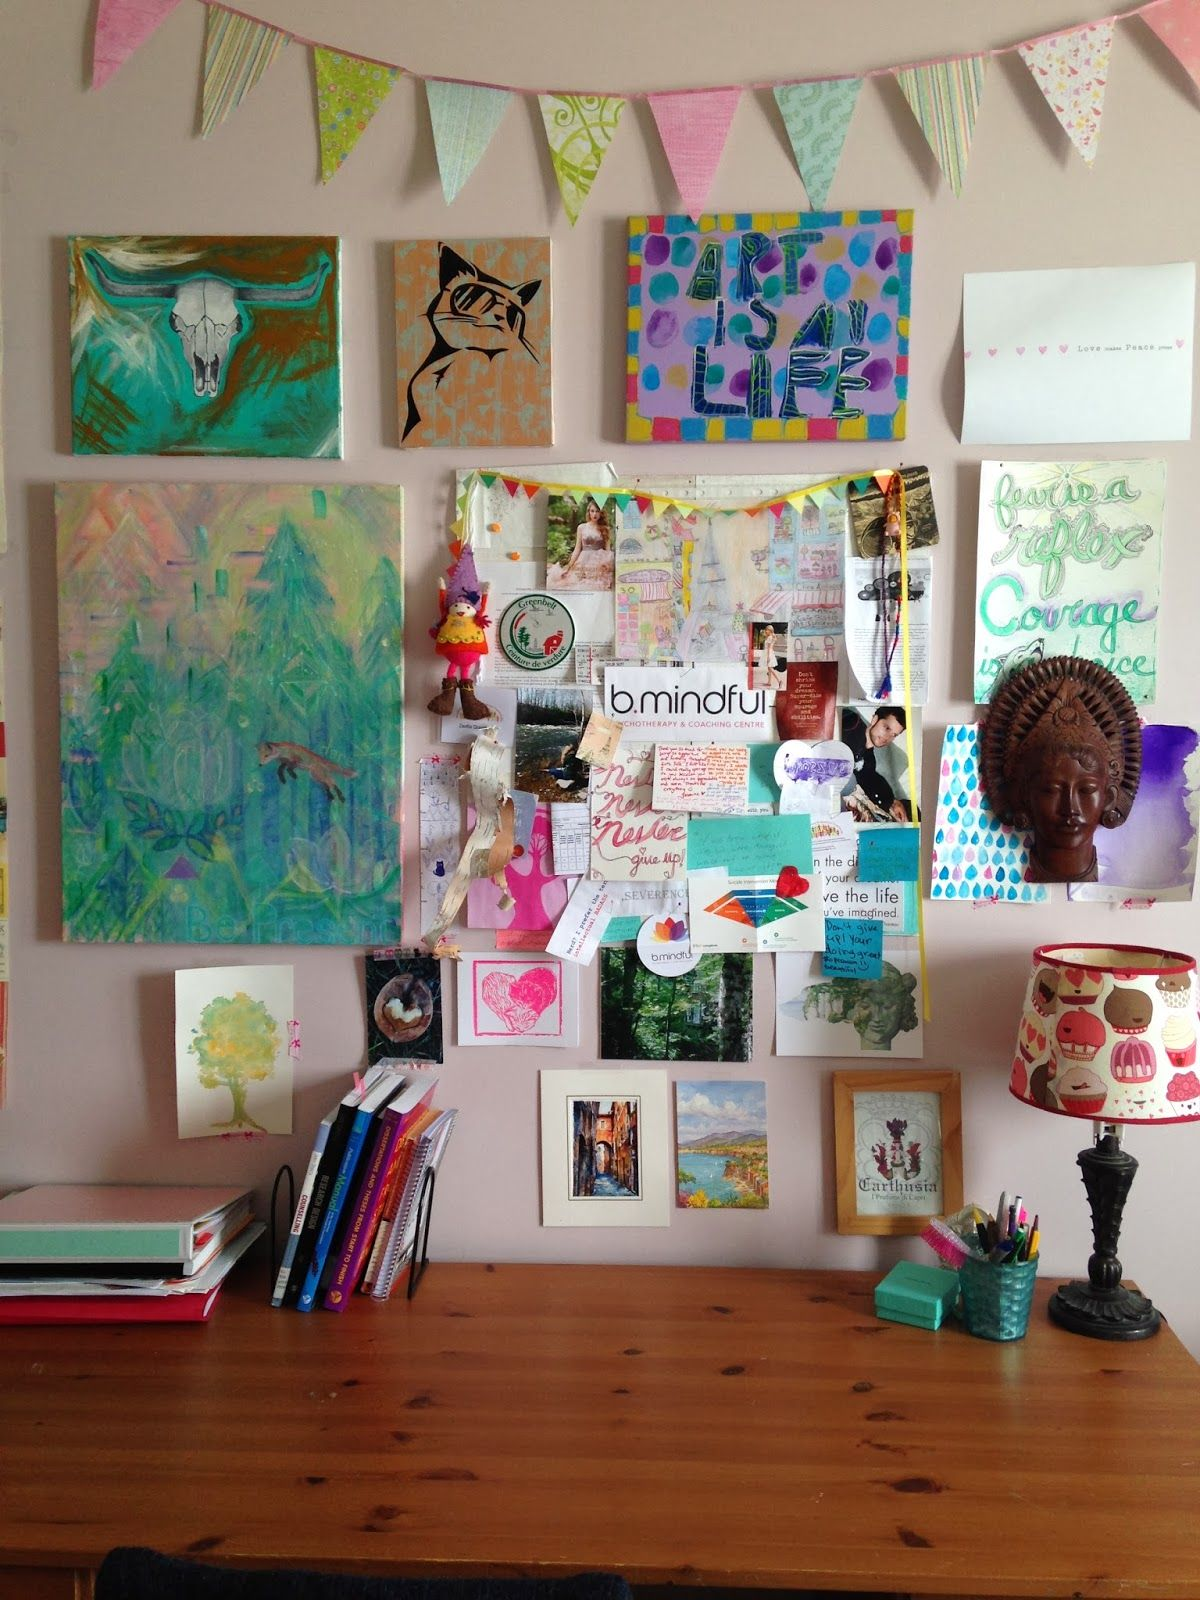 studio hipster room blog wanders spills full of home diy - Indie Bedroom Decor